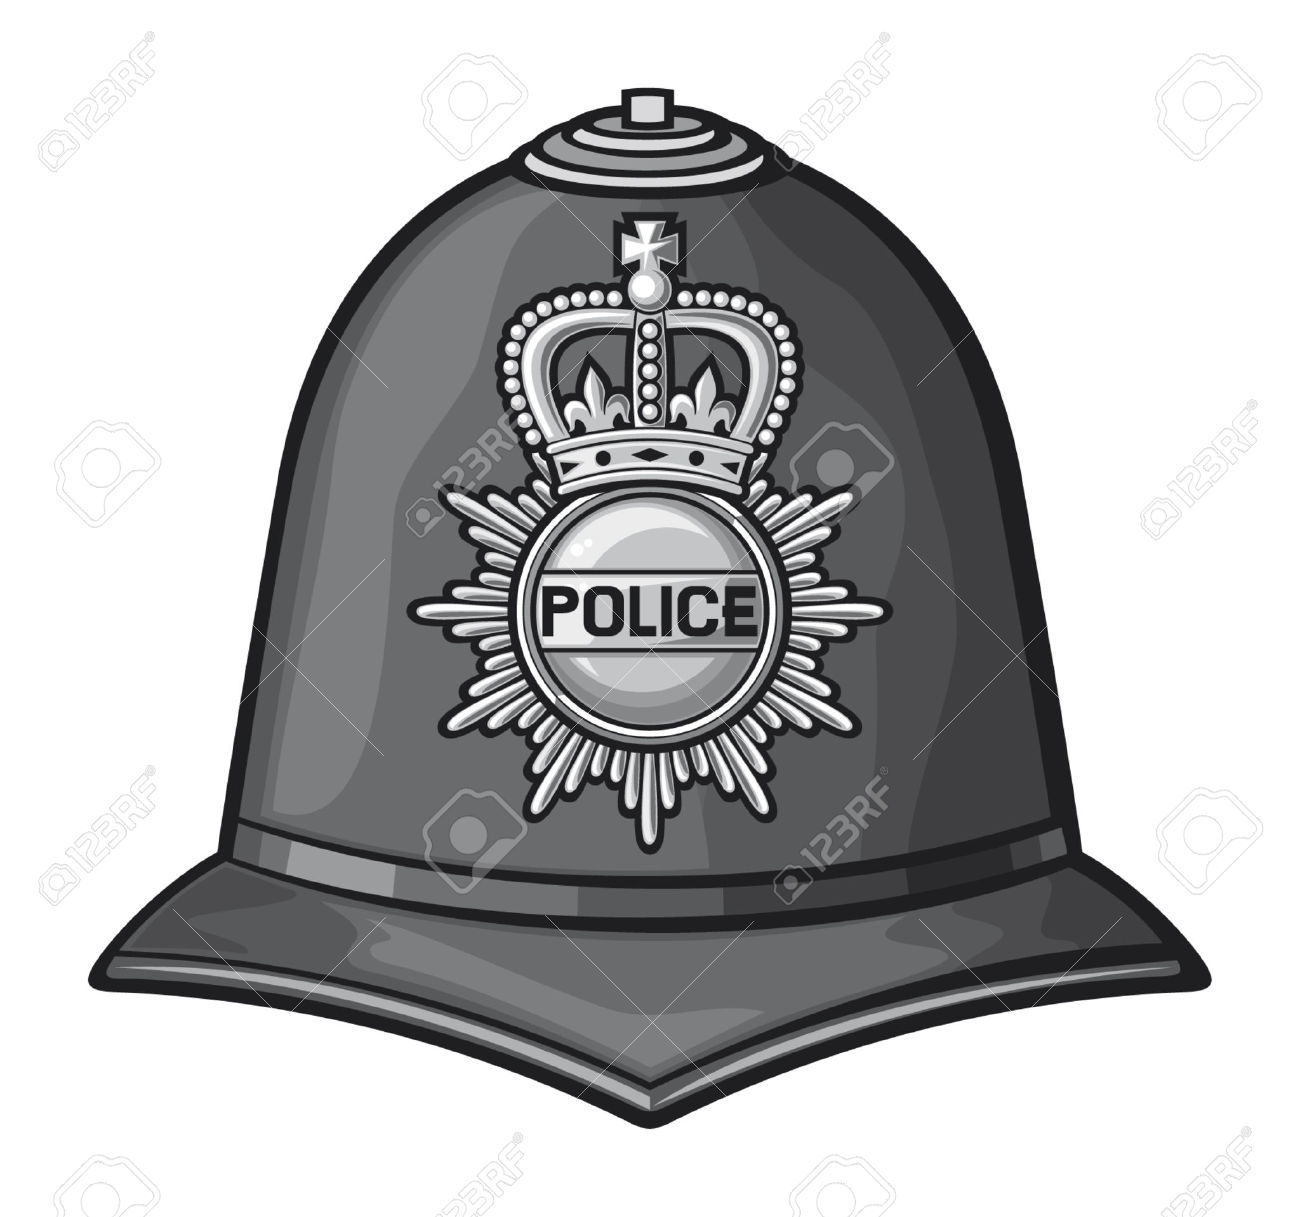 British police clipart image royalty free stock 310 Uk Police Stock Illustrations, Cliparts And Royalty Free Uk ... image royalty free stock